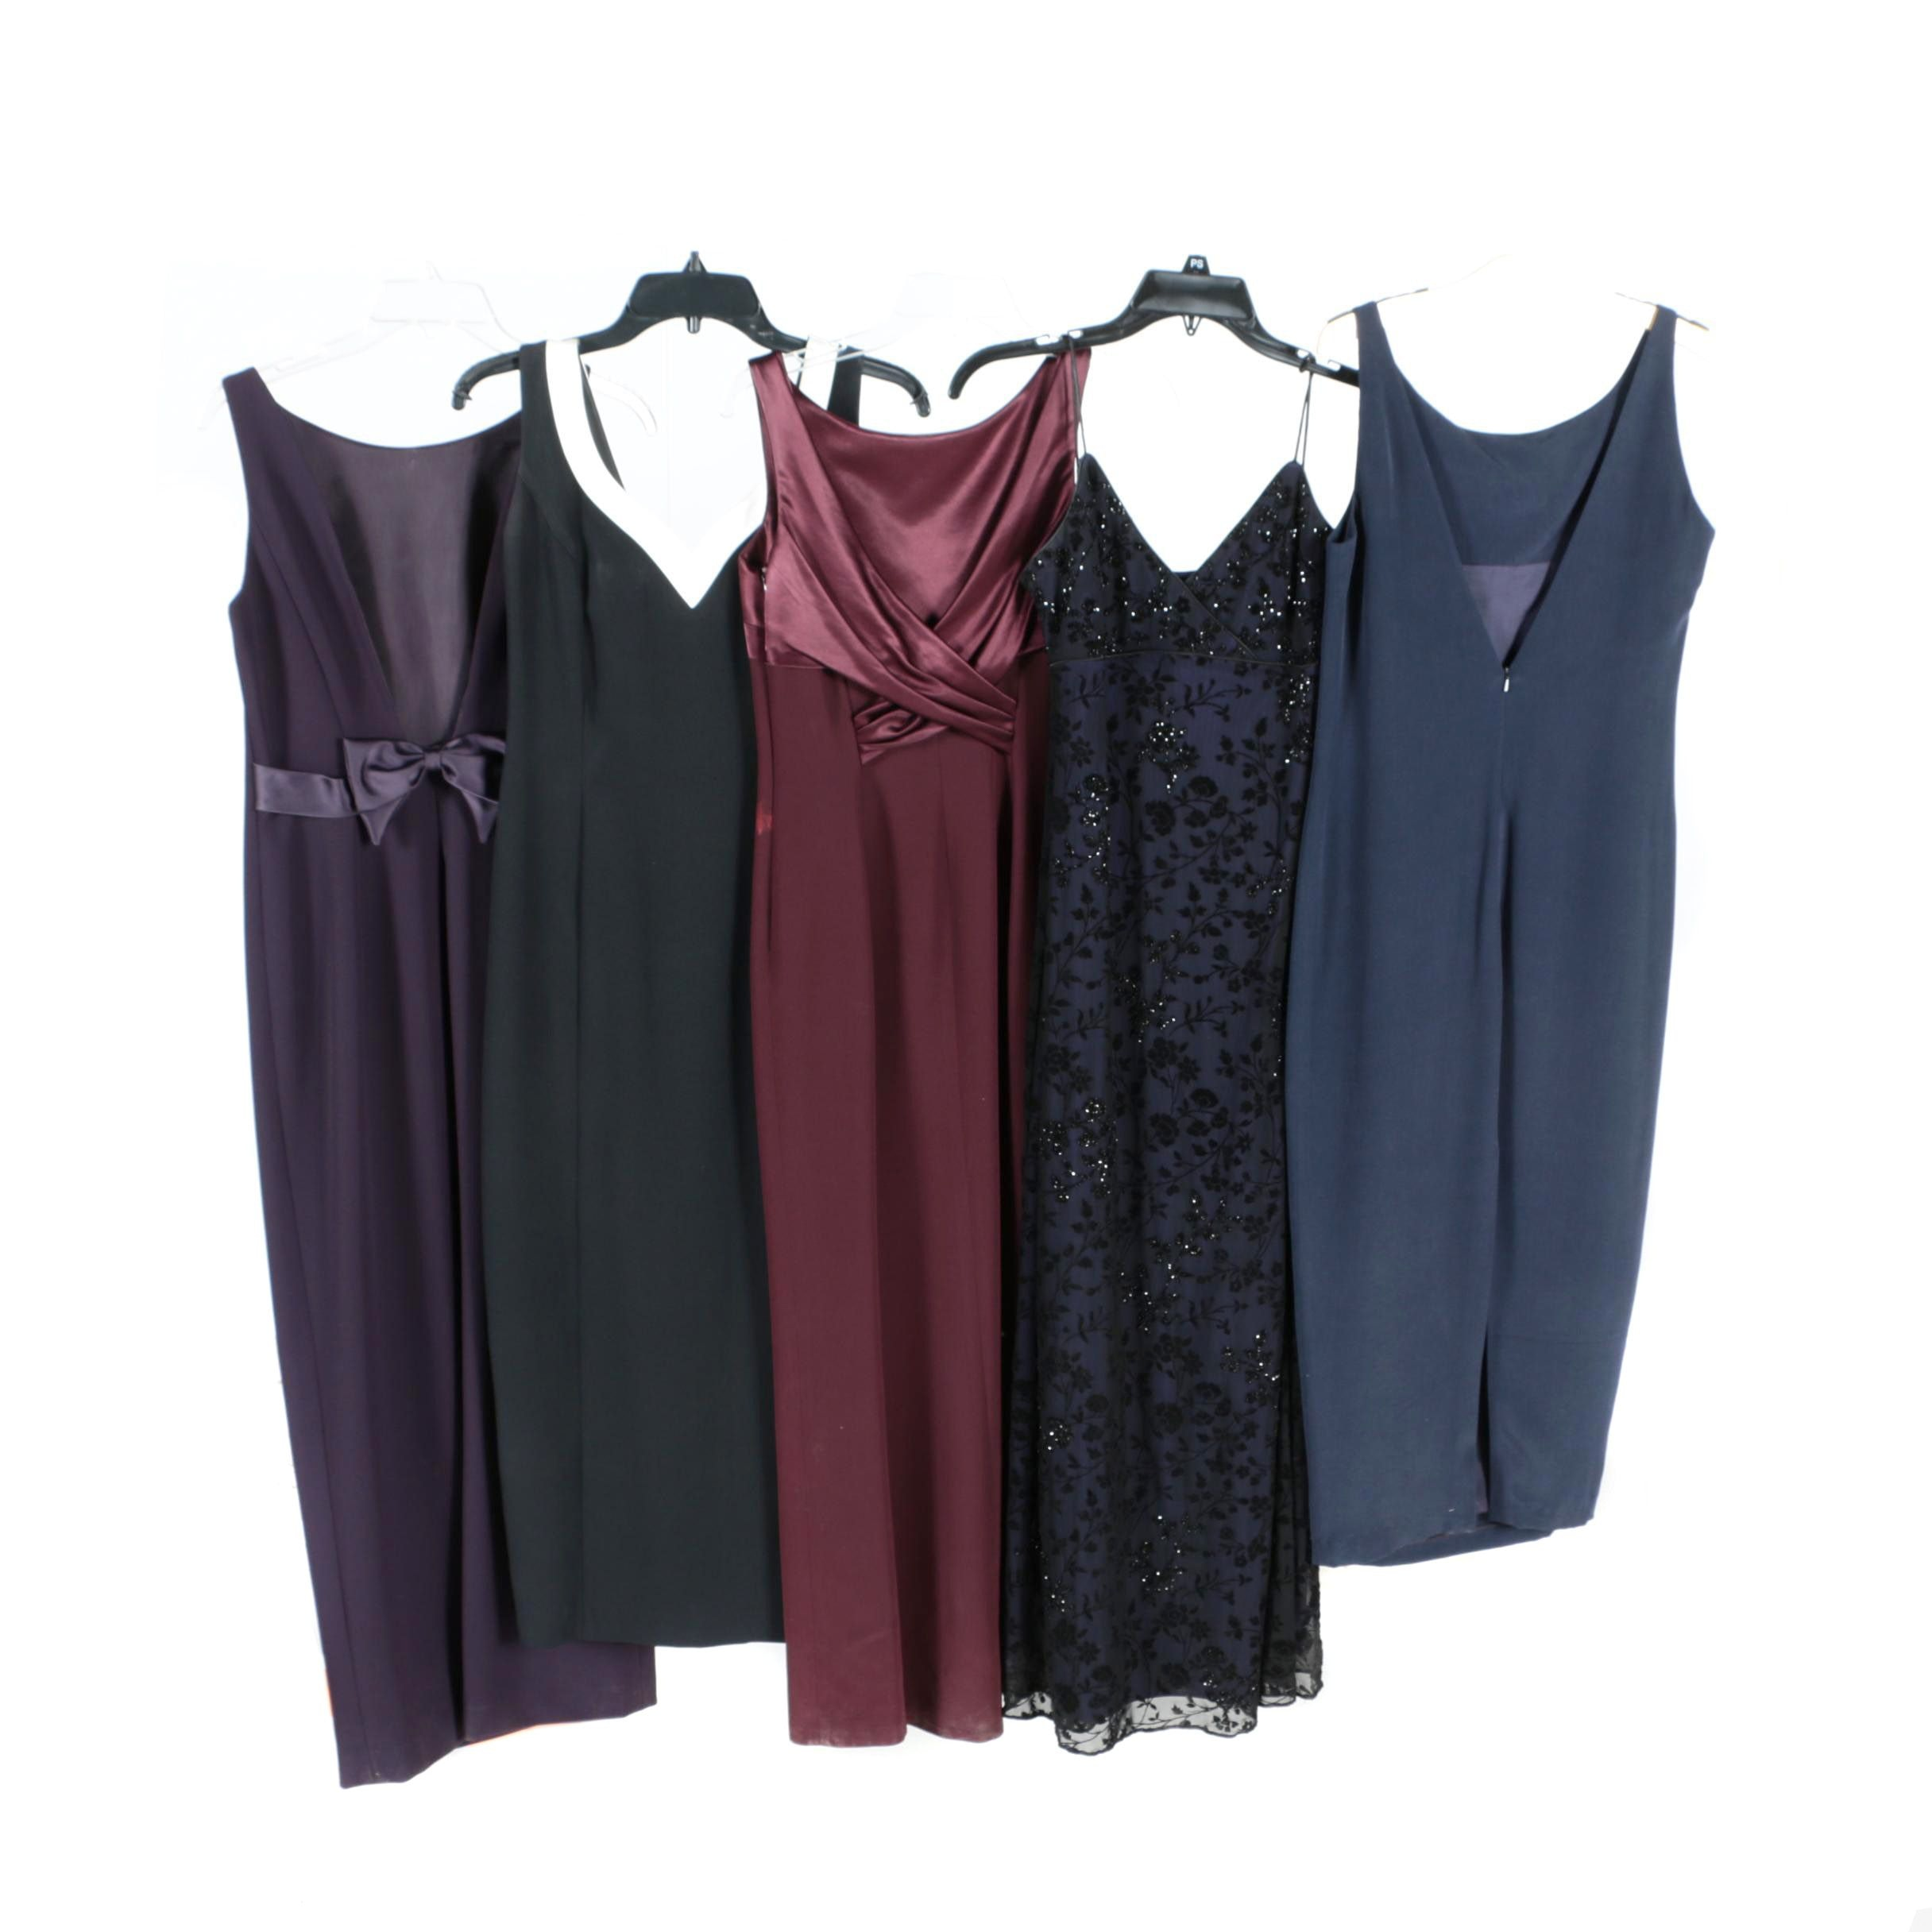 Women's Sleeveless Cocktail Dresses and Gowns Including Tahari